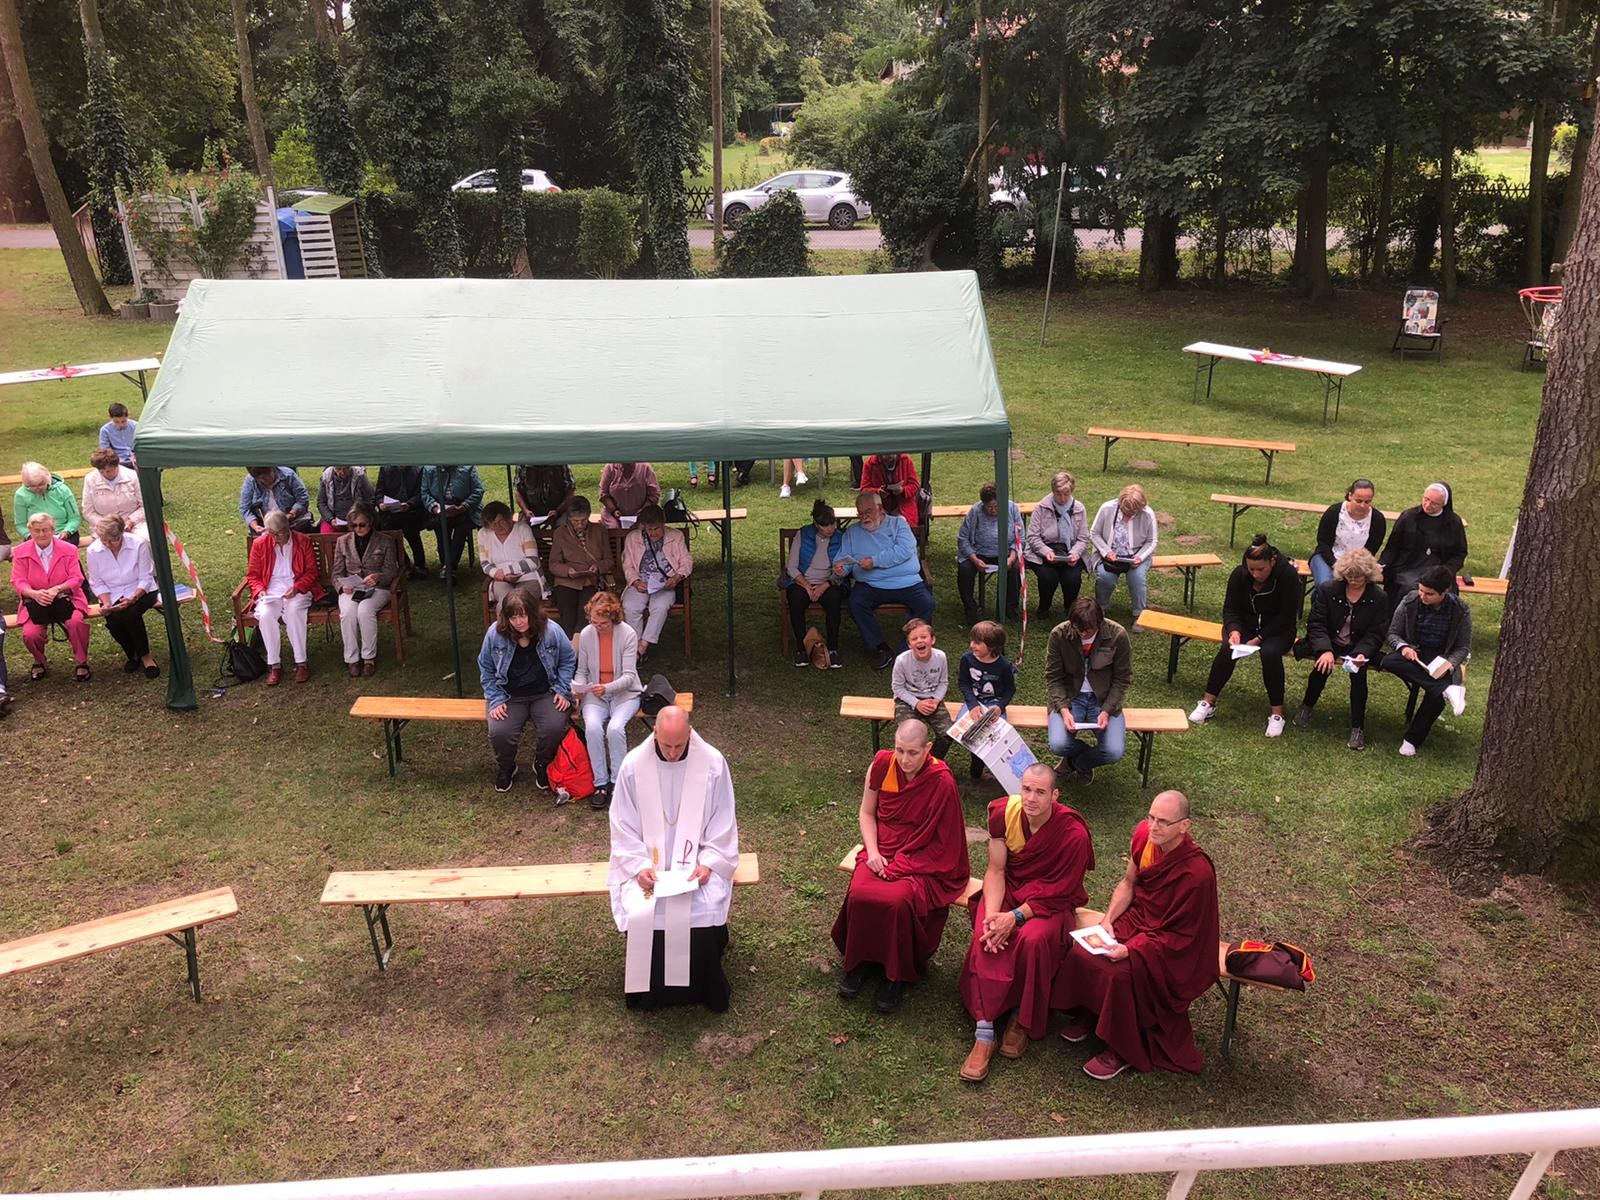 Interfaith worship is celebrated at the Farm in Riewend, Germany